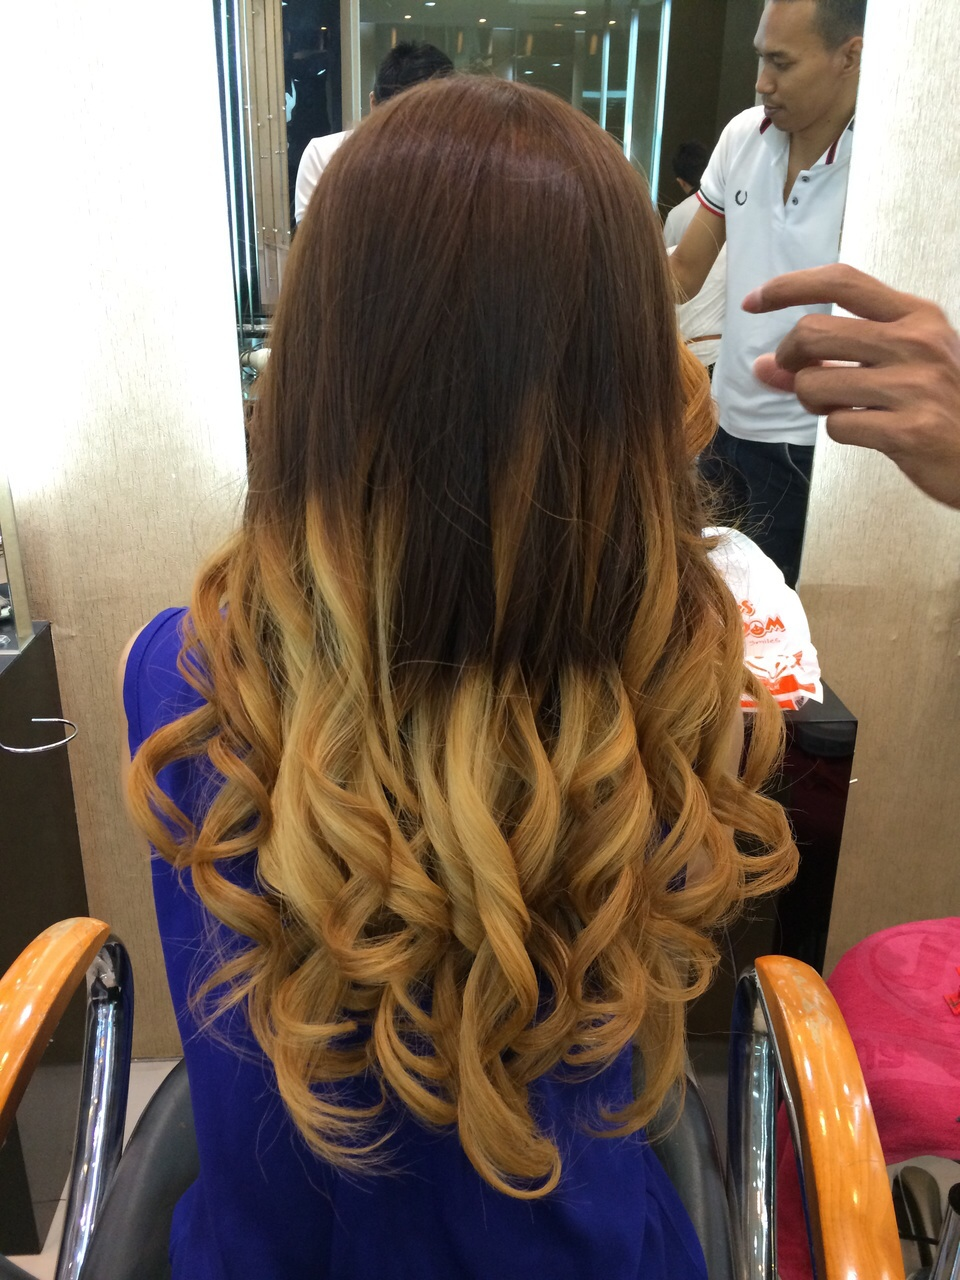 Ombre hair for summer stellangelita if you look at me from the front it will not looks like an ombre hair thats because i was also asked to bleach the front part of my hair left side urmus Gallery